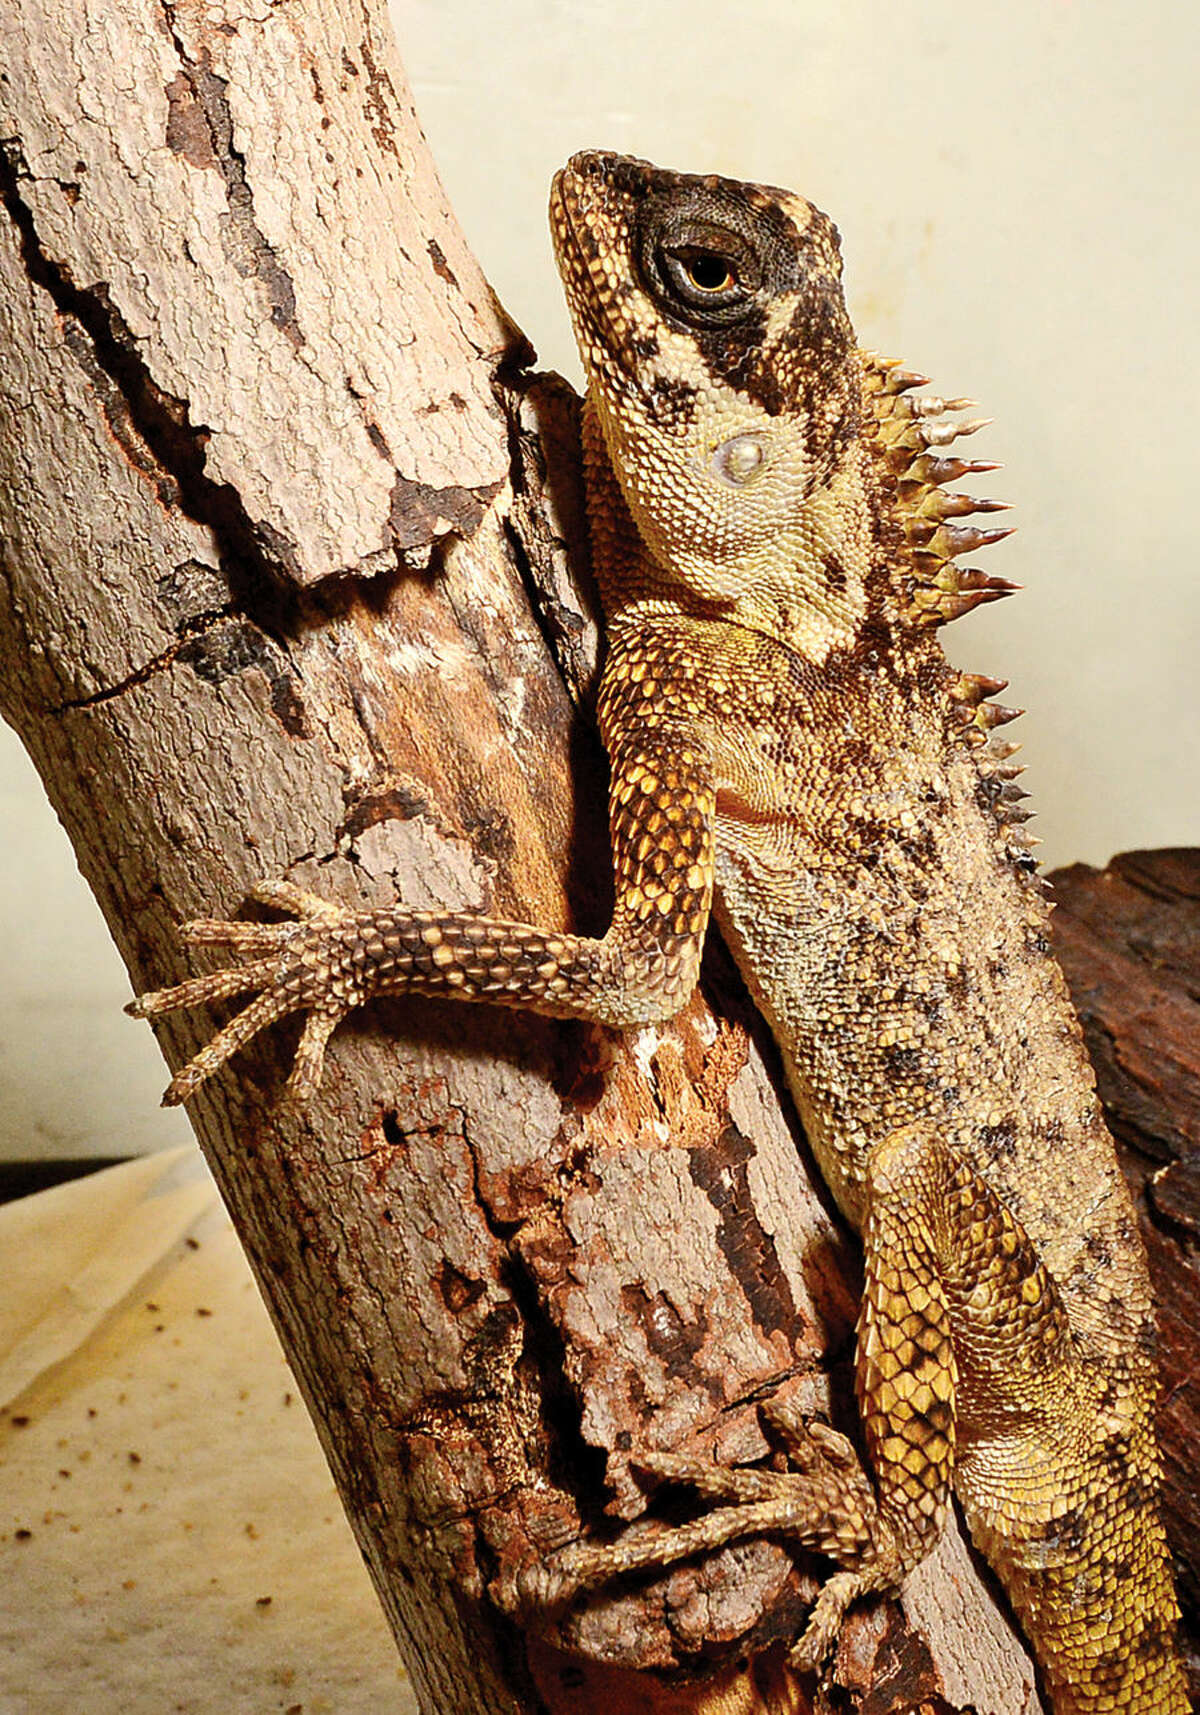 Hour photo / Erik Trautmann A Horned Dragon waitsto be moved into his new home in the Maritime Aquarium's new exhibit,